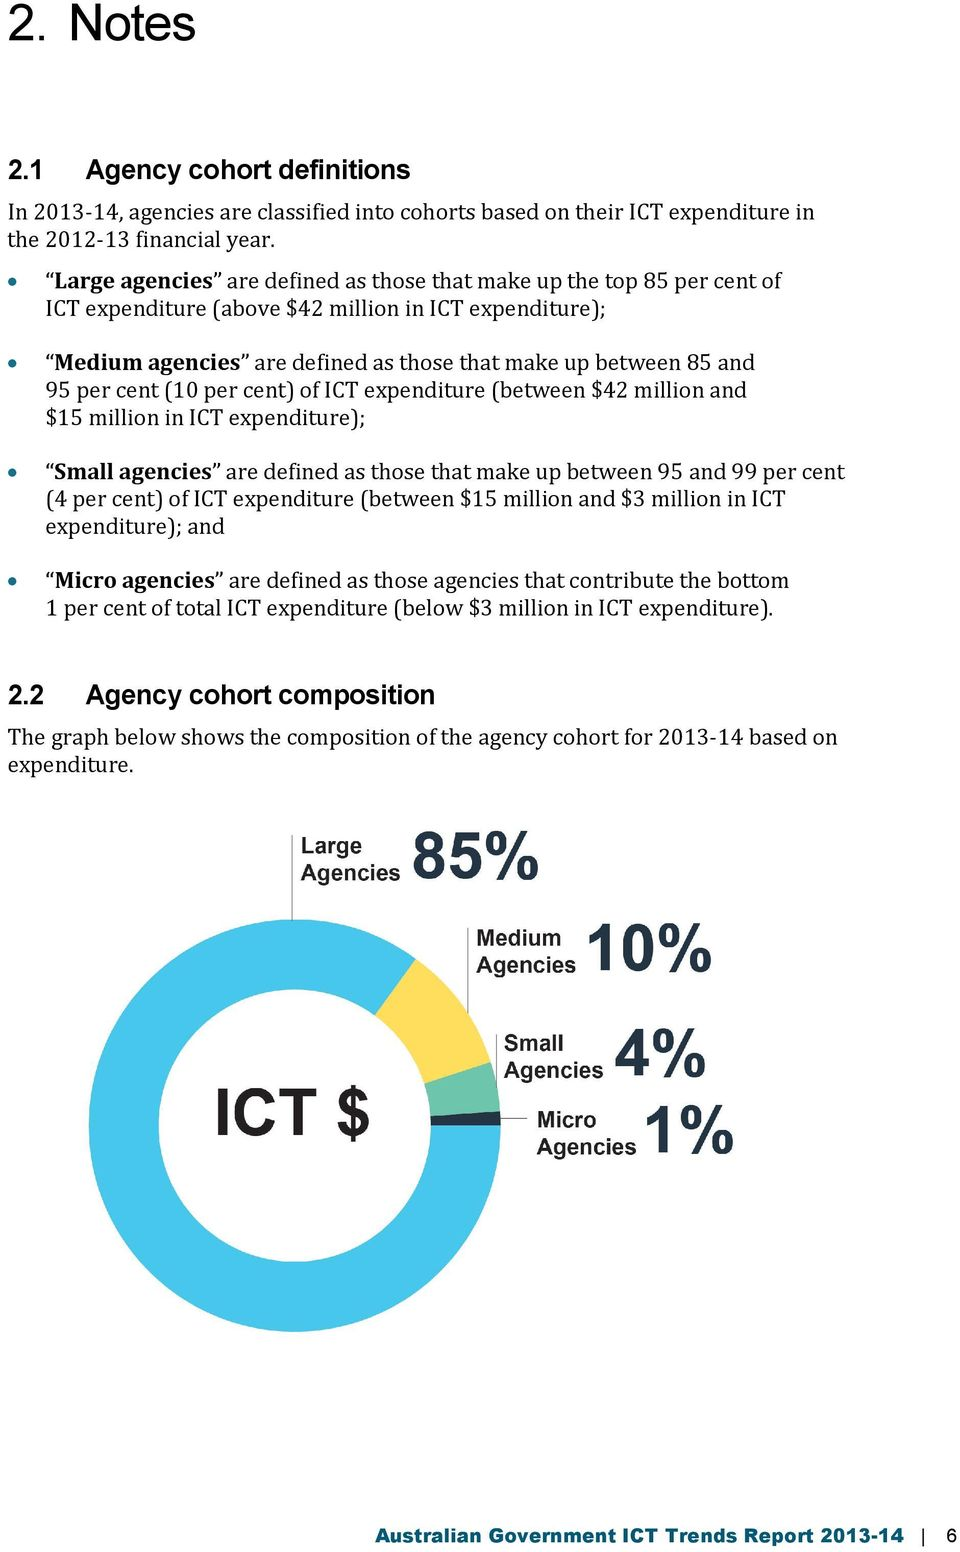 cent (10 per cent) of ICT expenditure (between $42 million and $15 million in ICT expenditure); Small agencies are defined as those that make up between 95 and 99 per cent (4 per cent) of ICT